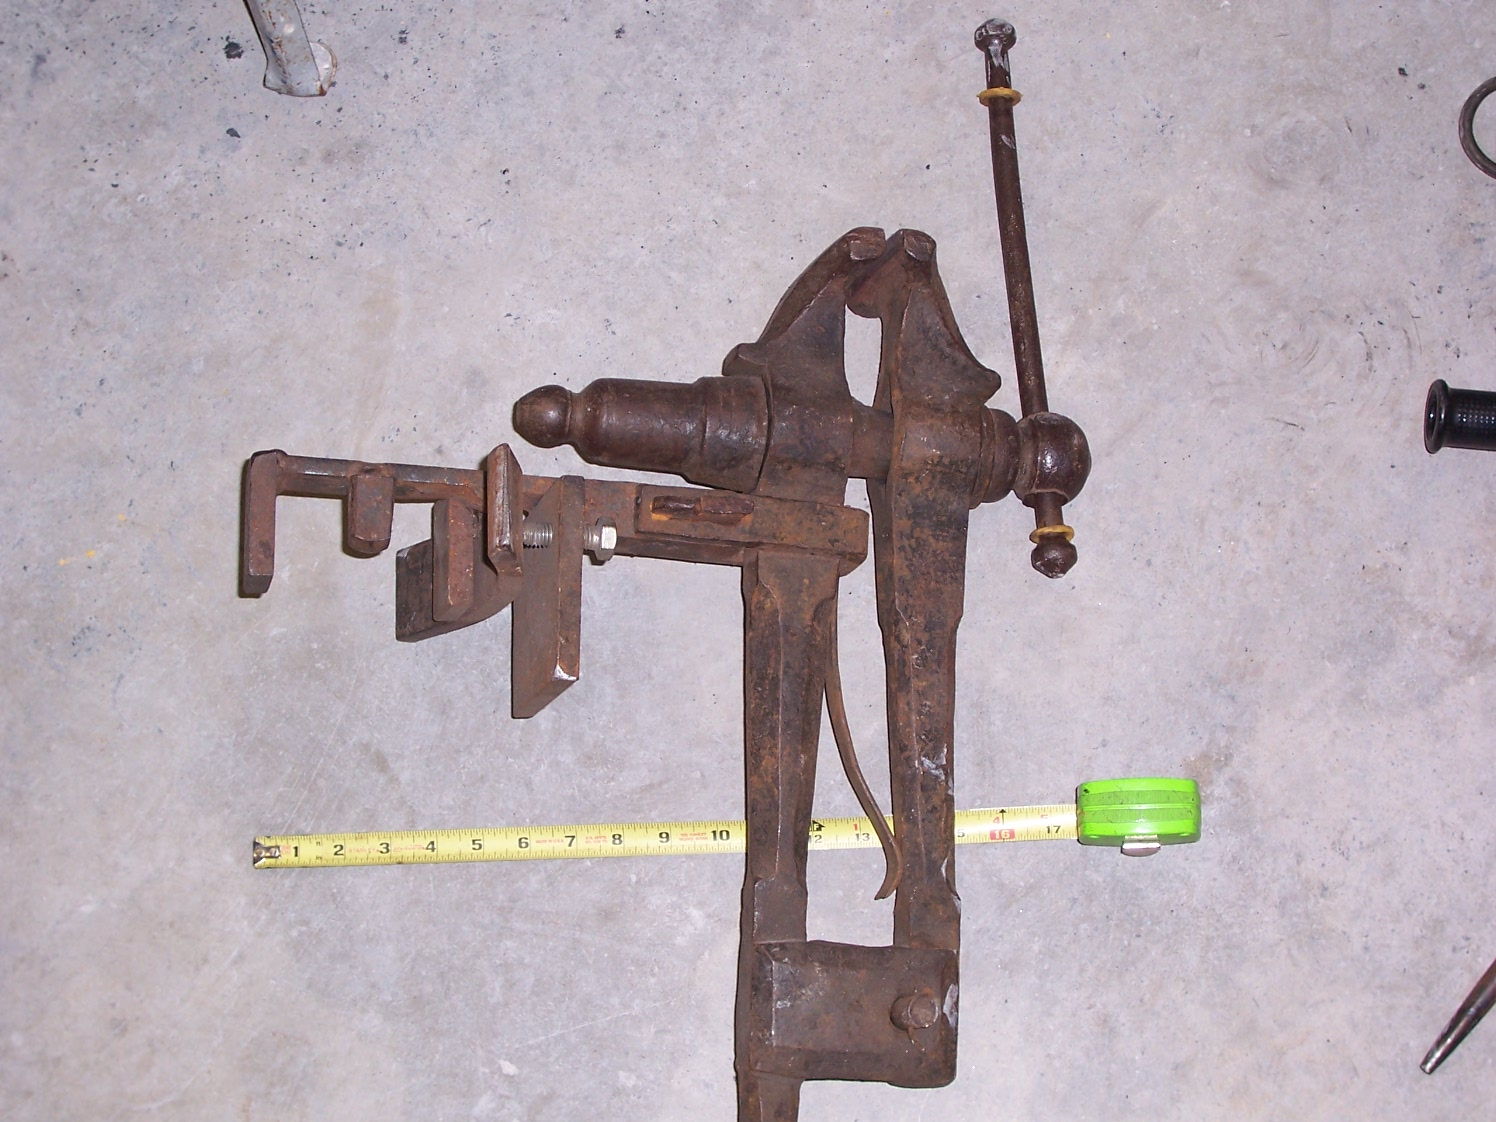 vise bracket to hold vise to anvil & stand